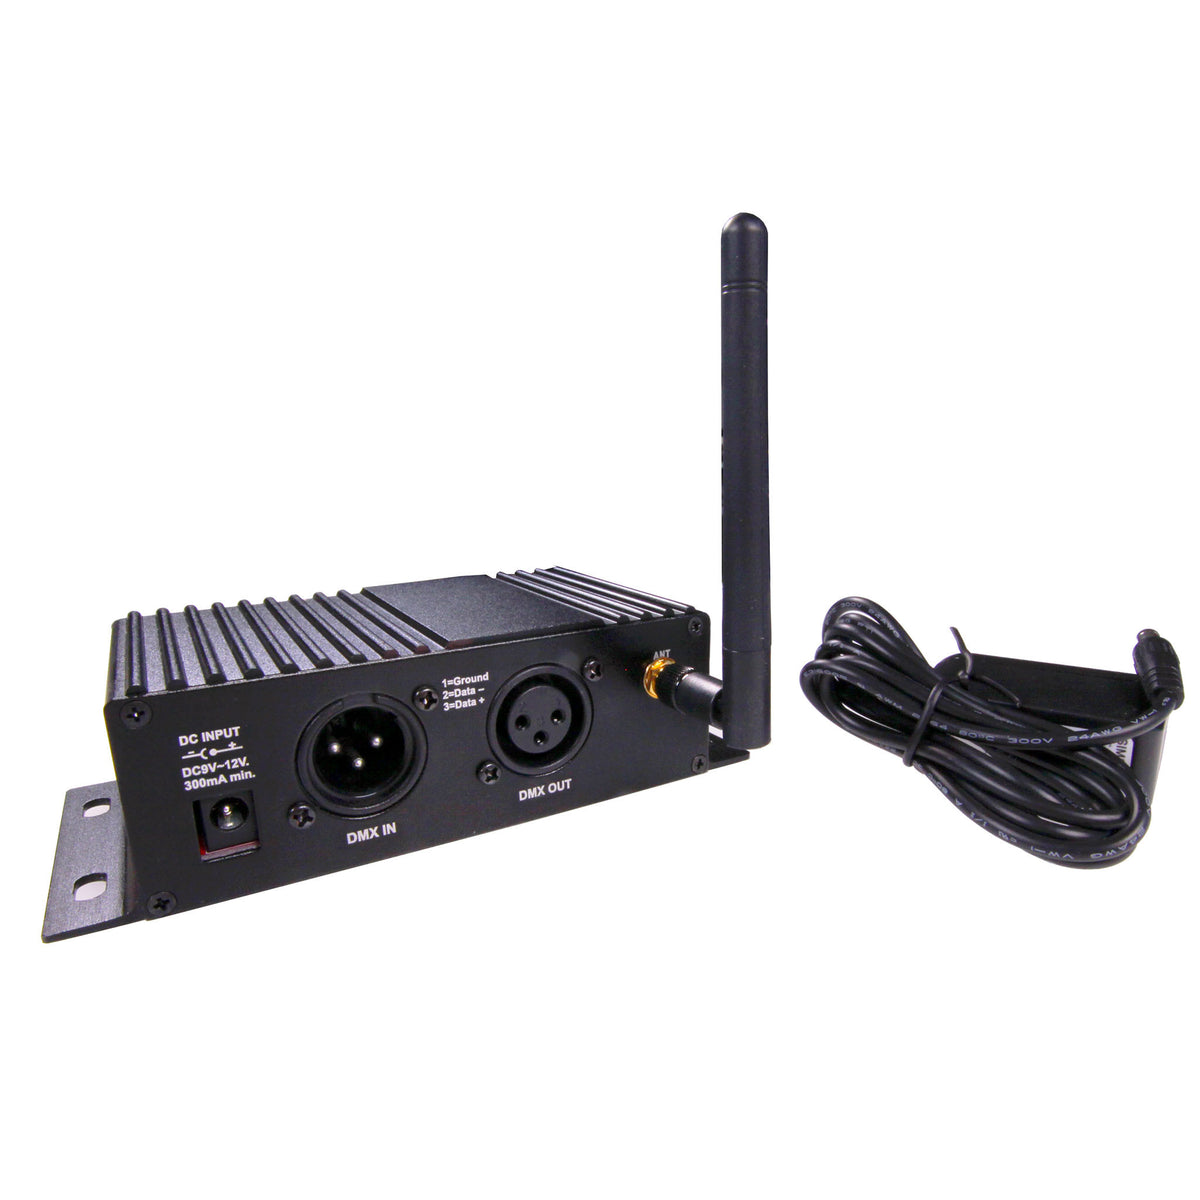 LCD Wireless DMX 512 Transmitter / Receiver Wireless DMX